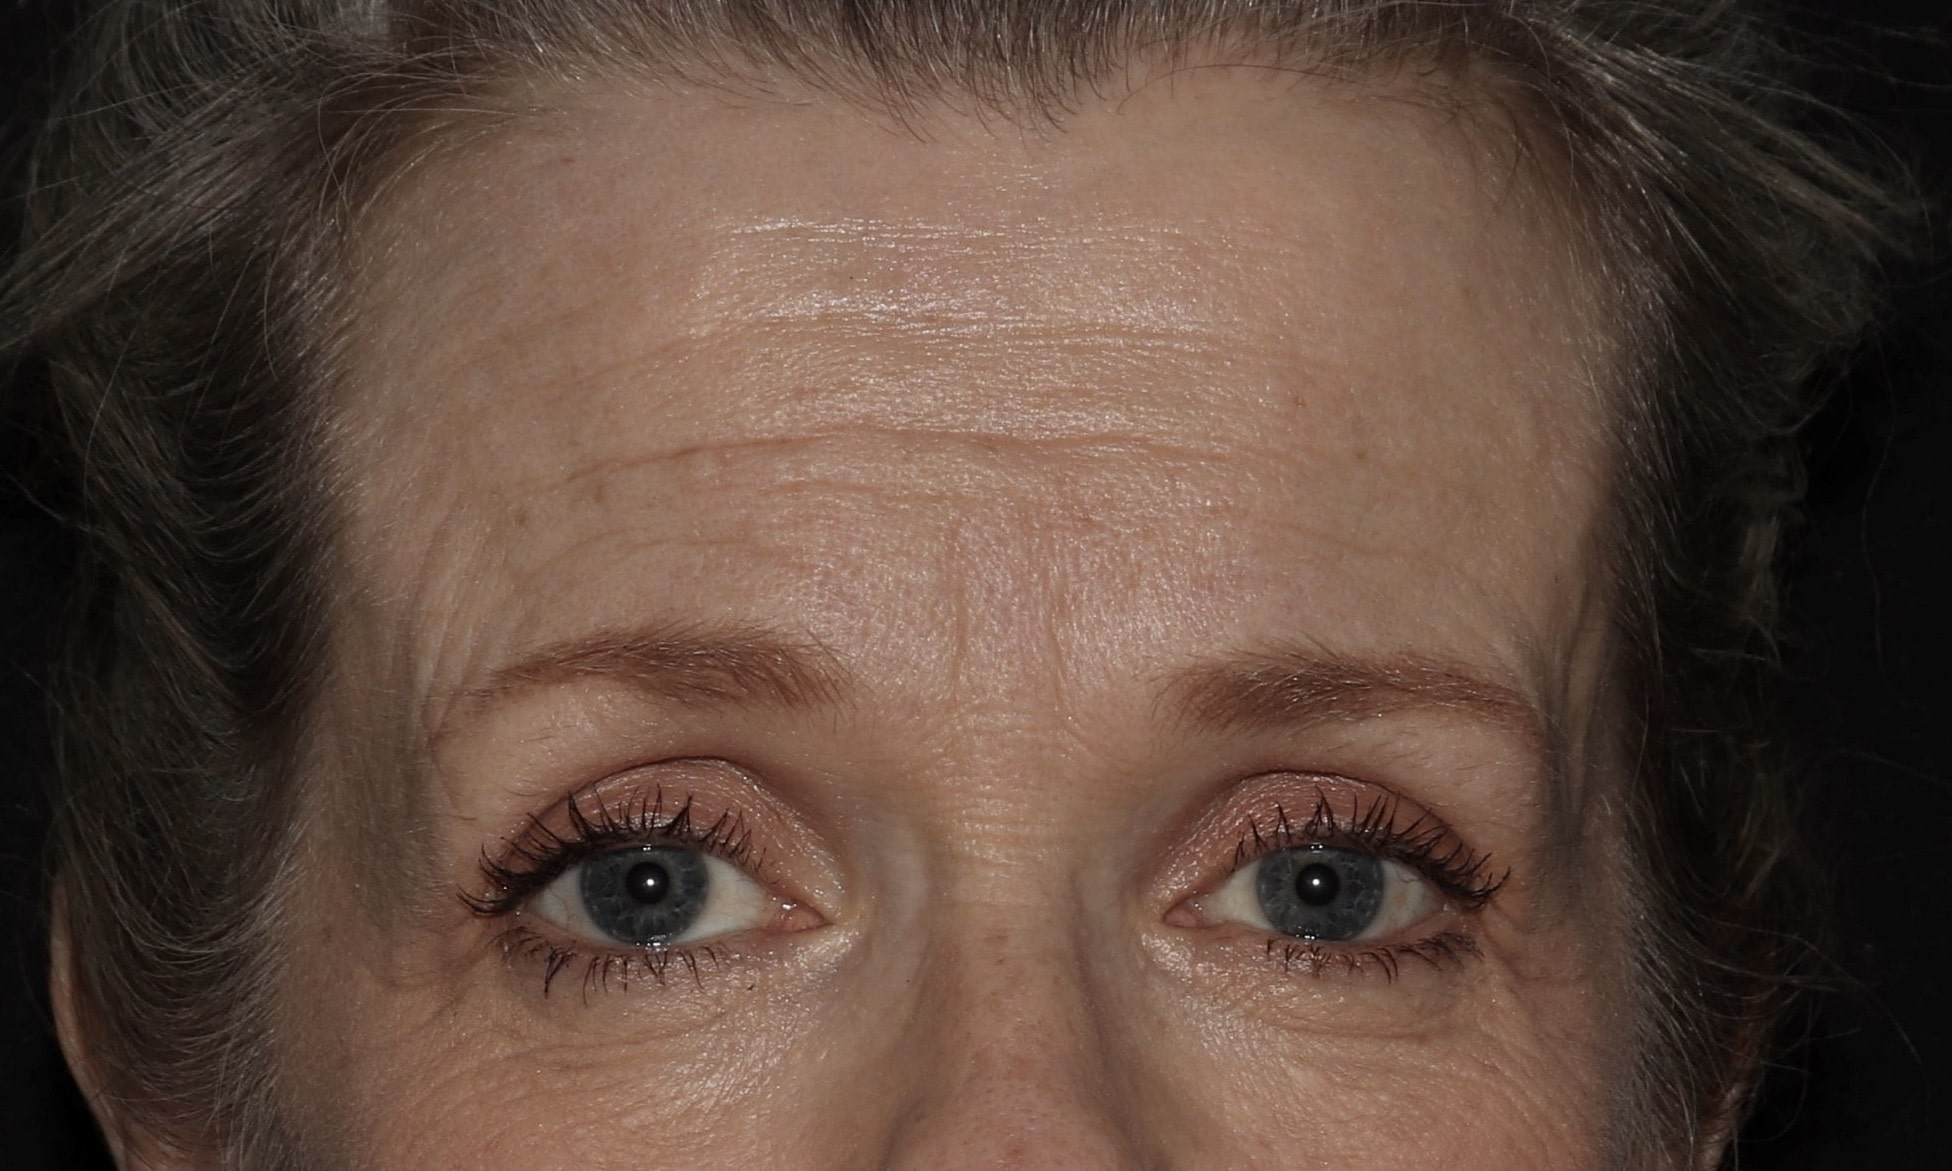 LW Fillers Botox Longmont scaled 2